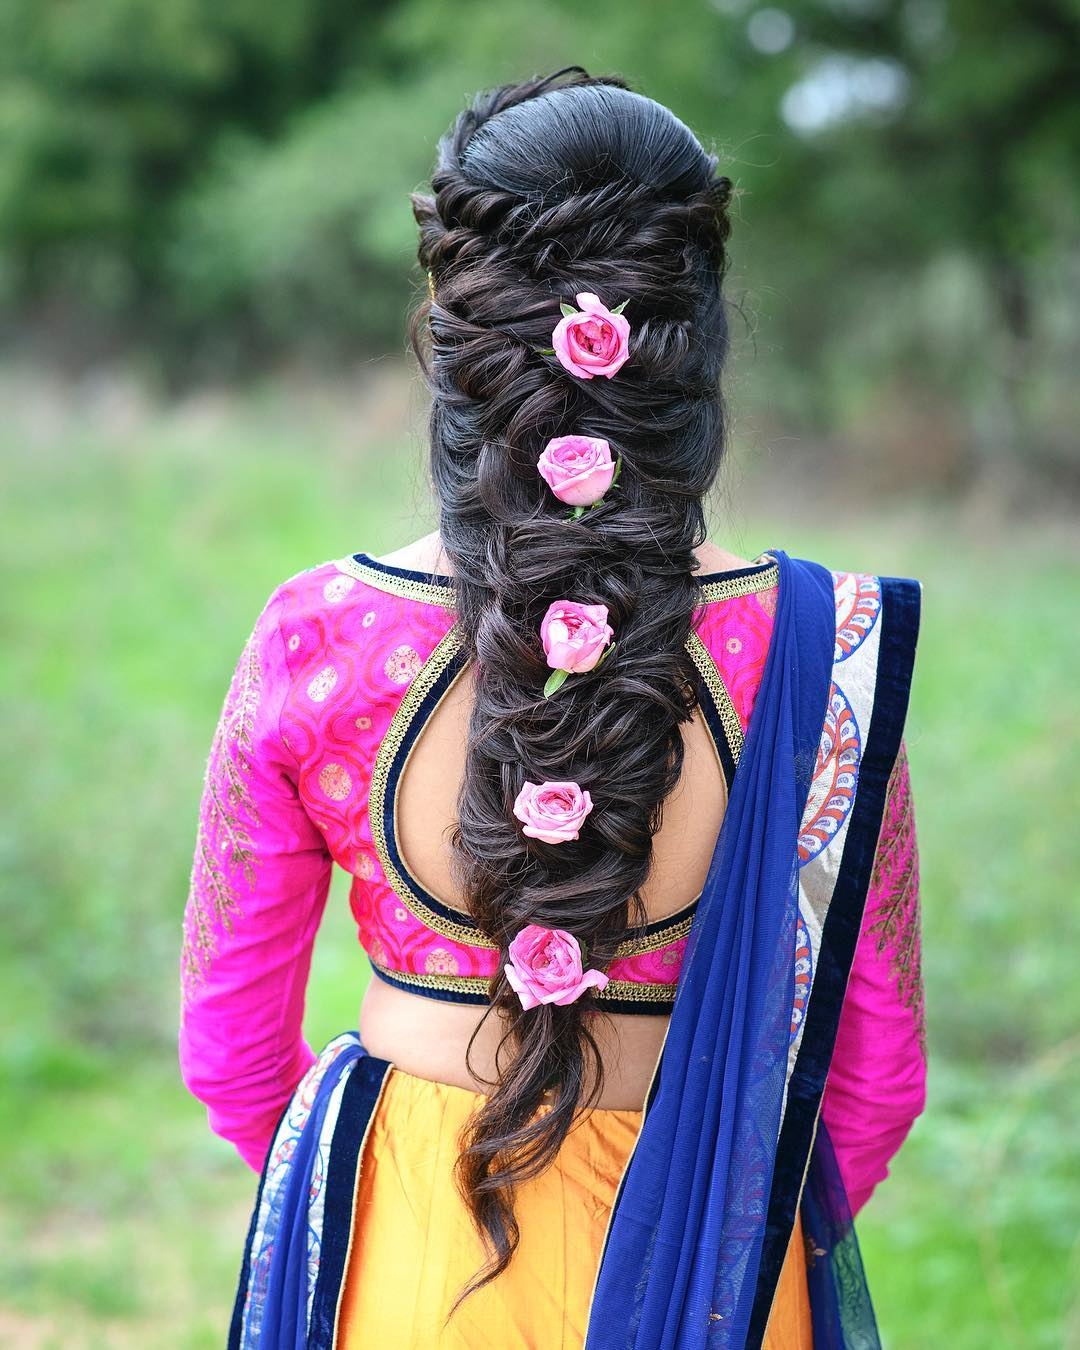 Pink roses: Floral hairstyles for Haldi and Mehendi Ceremonies!a